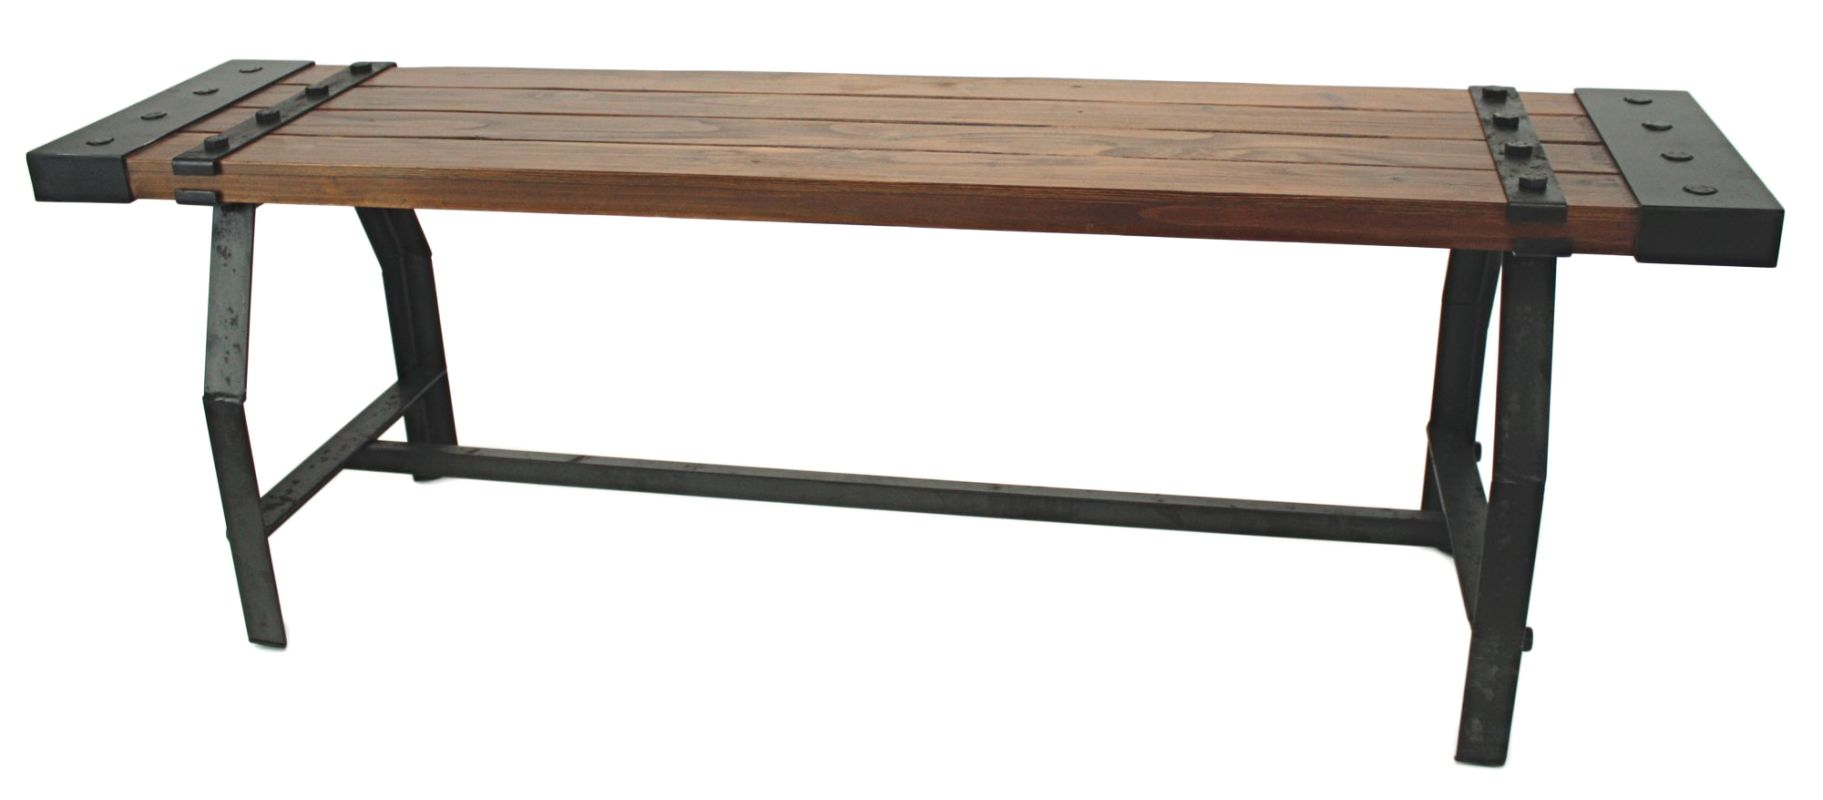 Aspire Home Accents 5947 Elkhart Wood Bench Brown Furniture Benches